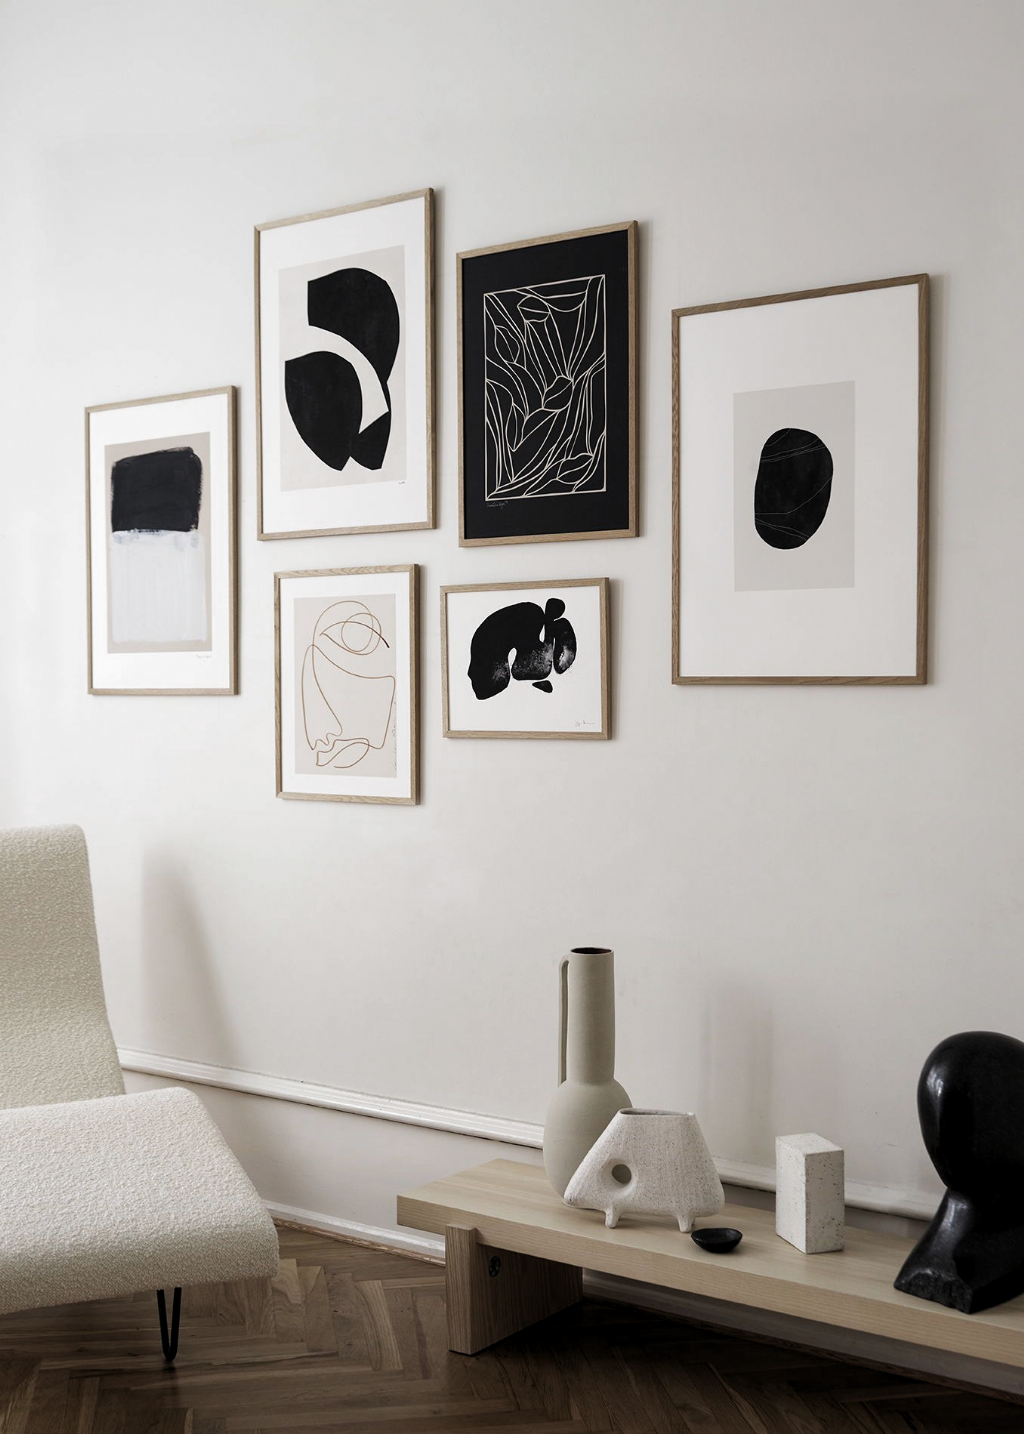 Stunning Abstract Art Wall Inspiration with black accents. ⁠Scandinavian living room with art wall. Minimal poster design available from The Poster Club.  #art #artprint #artposter #tpc #theposterclub #interiordesign #nordicdecor #homestyling #artwall #scandinavianliving